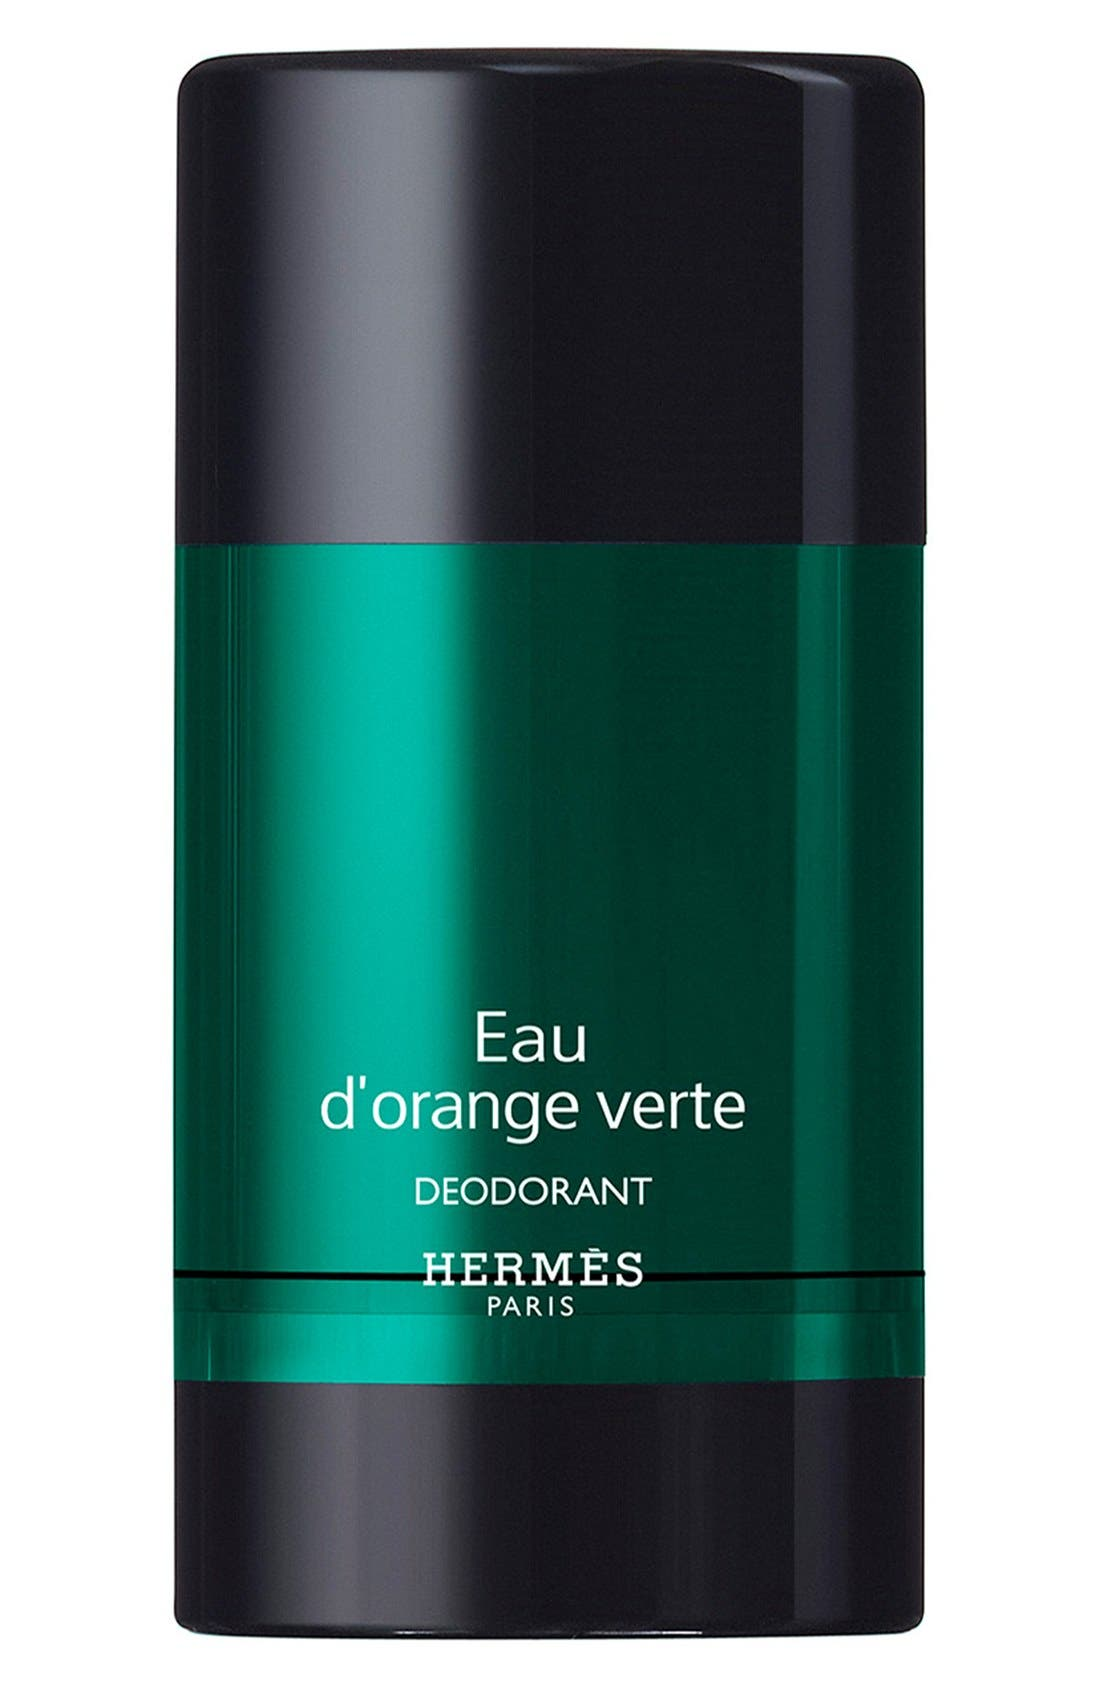 HERMÈS Eau d'orange verte - Alcohol-free deodorant stick, Main, color, NO COLOR